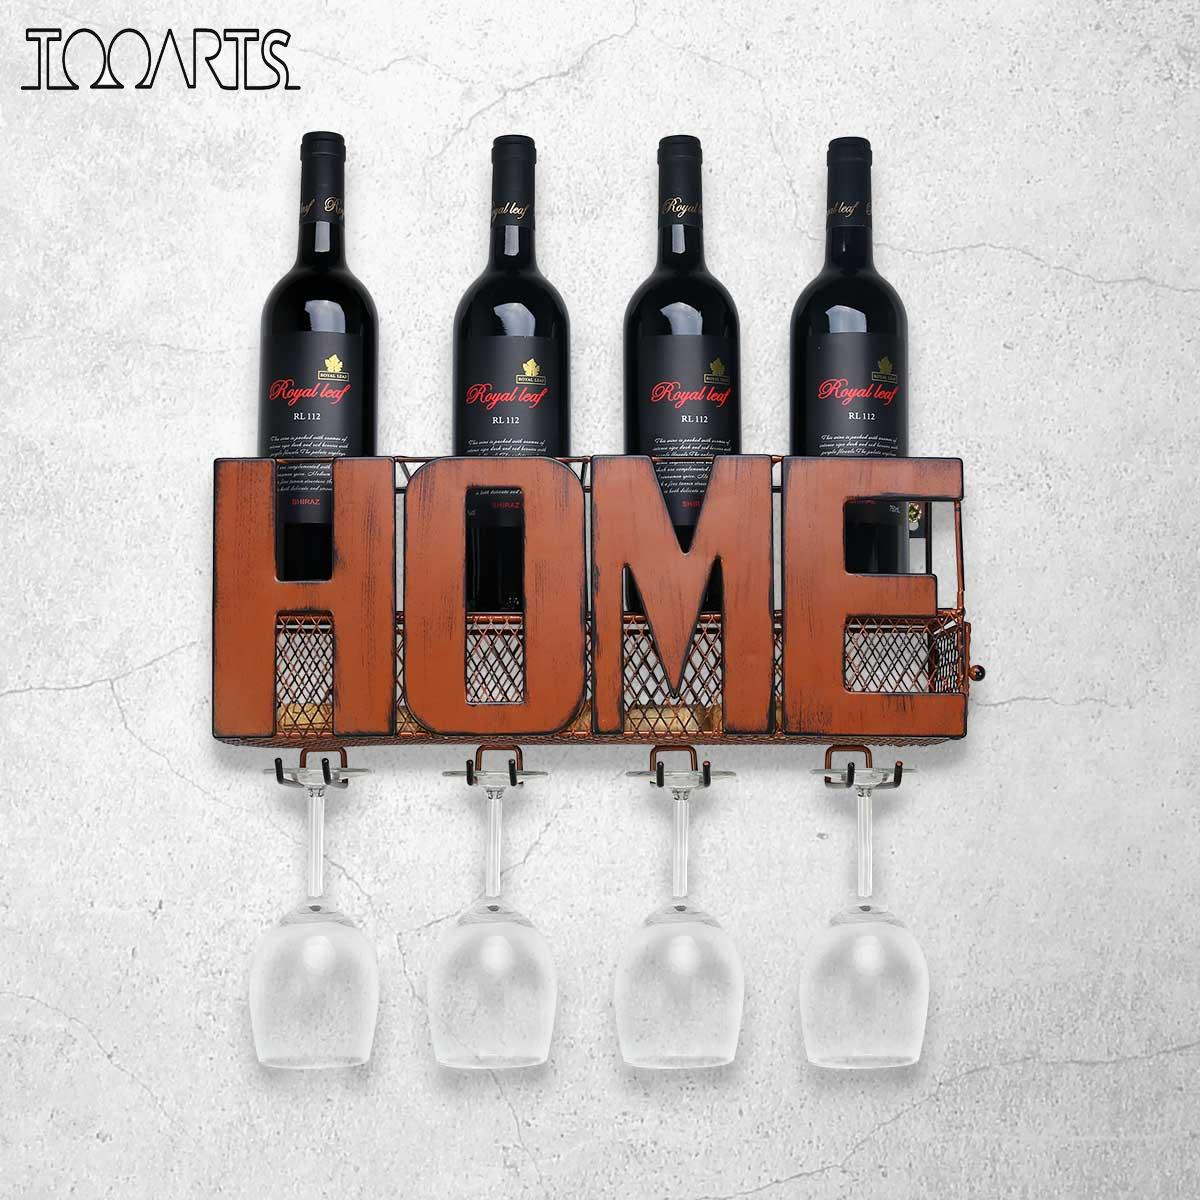 Wall Mounted Wine Rack Cork Storage Container Hanging Wine Glass Holder Wine Storage Rack Home Kitchen